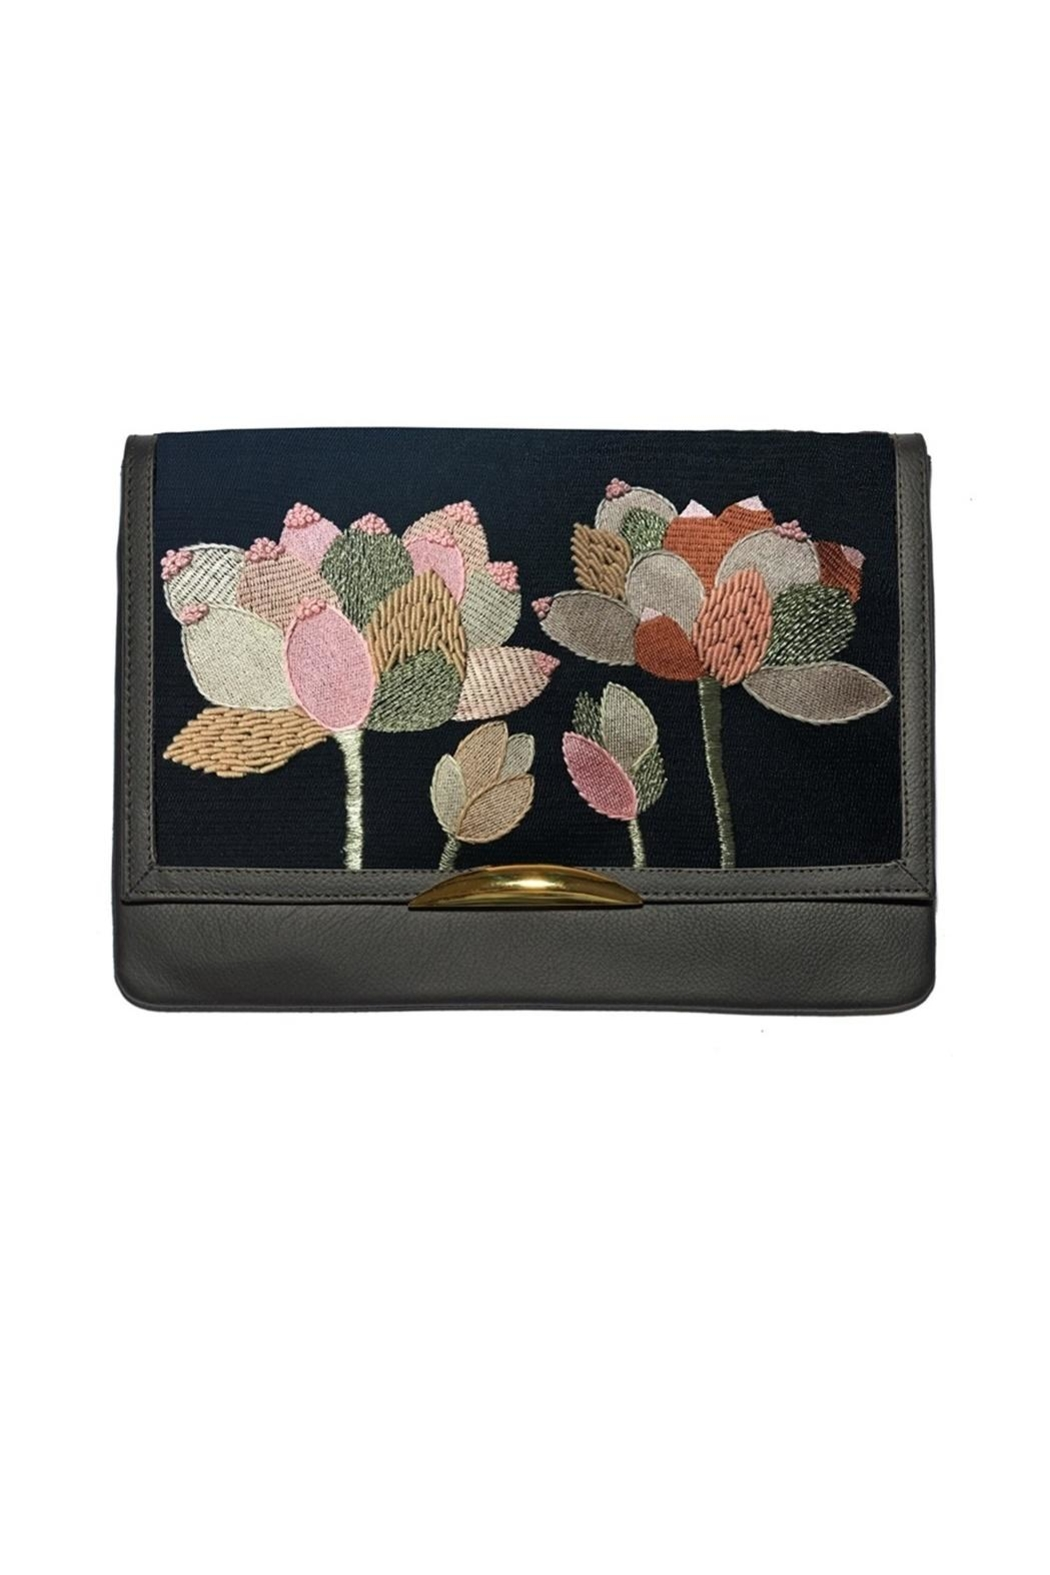 Lizzie Fortunato Port Call Clutch - Front Cropped Image